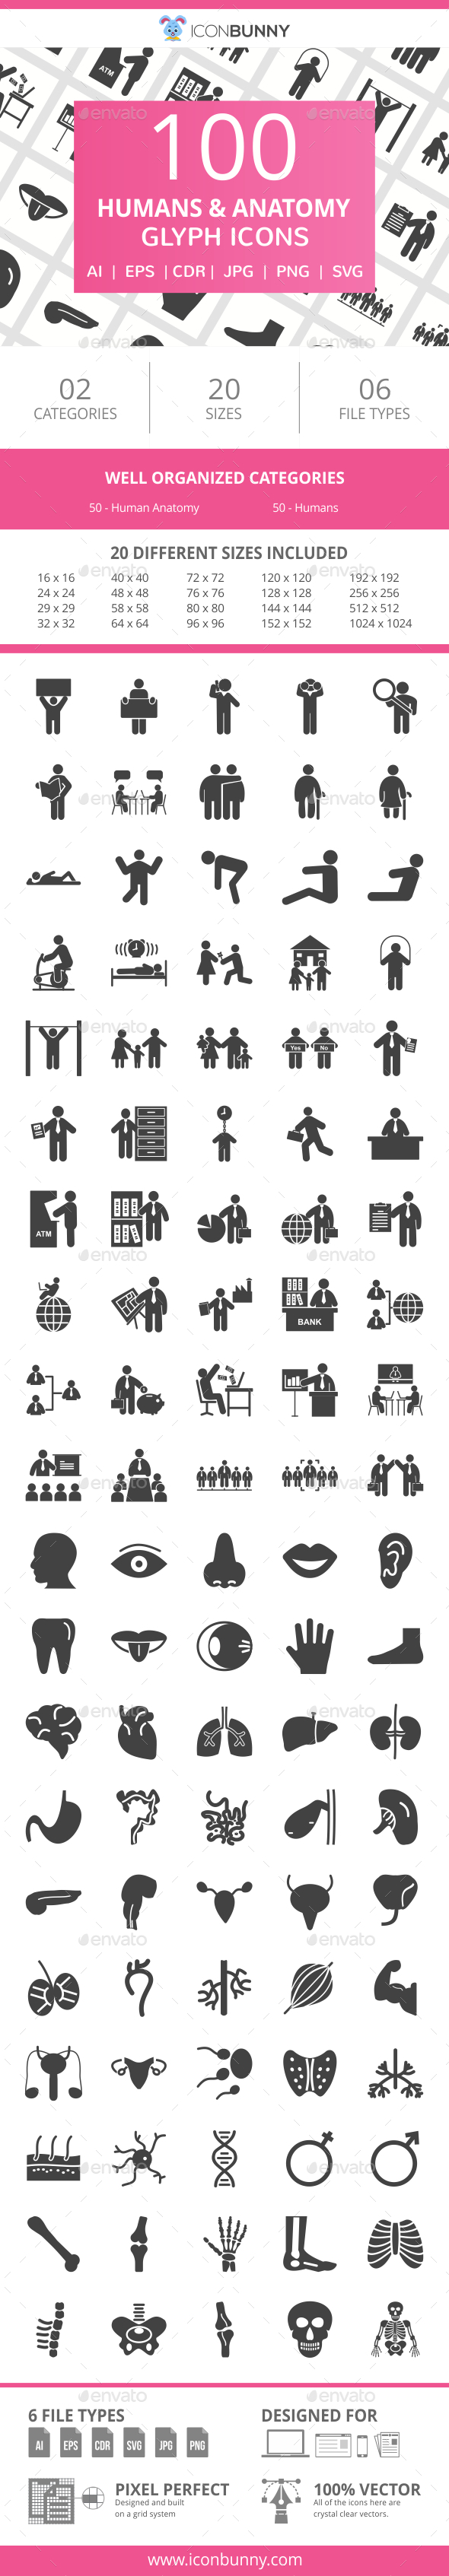 100 Humans & Anatomy Glyph Icons - Icons